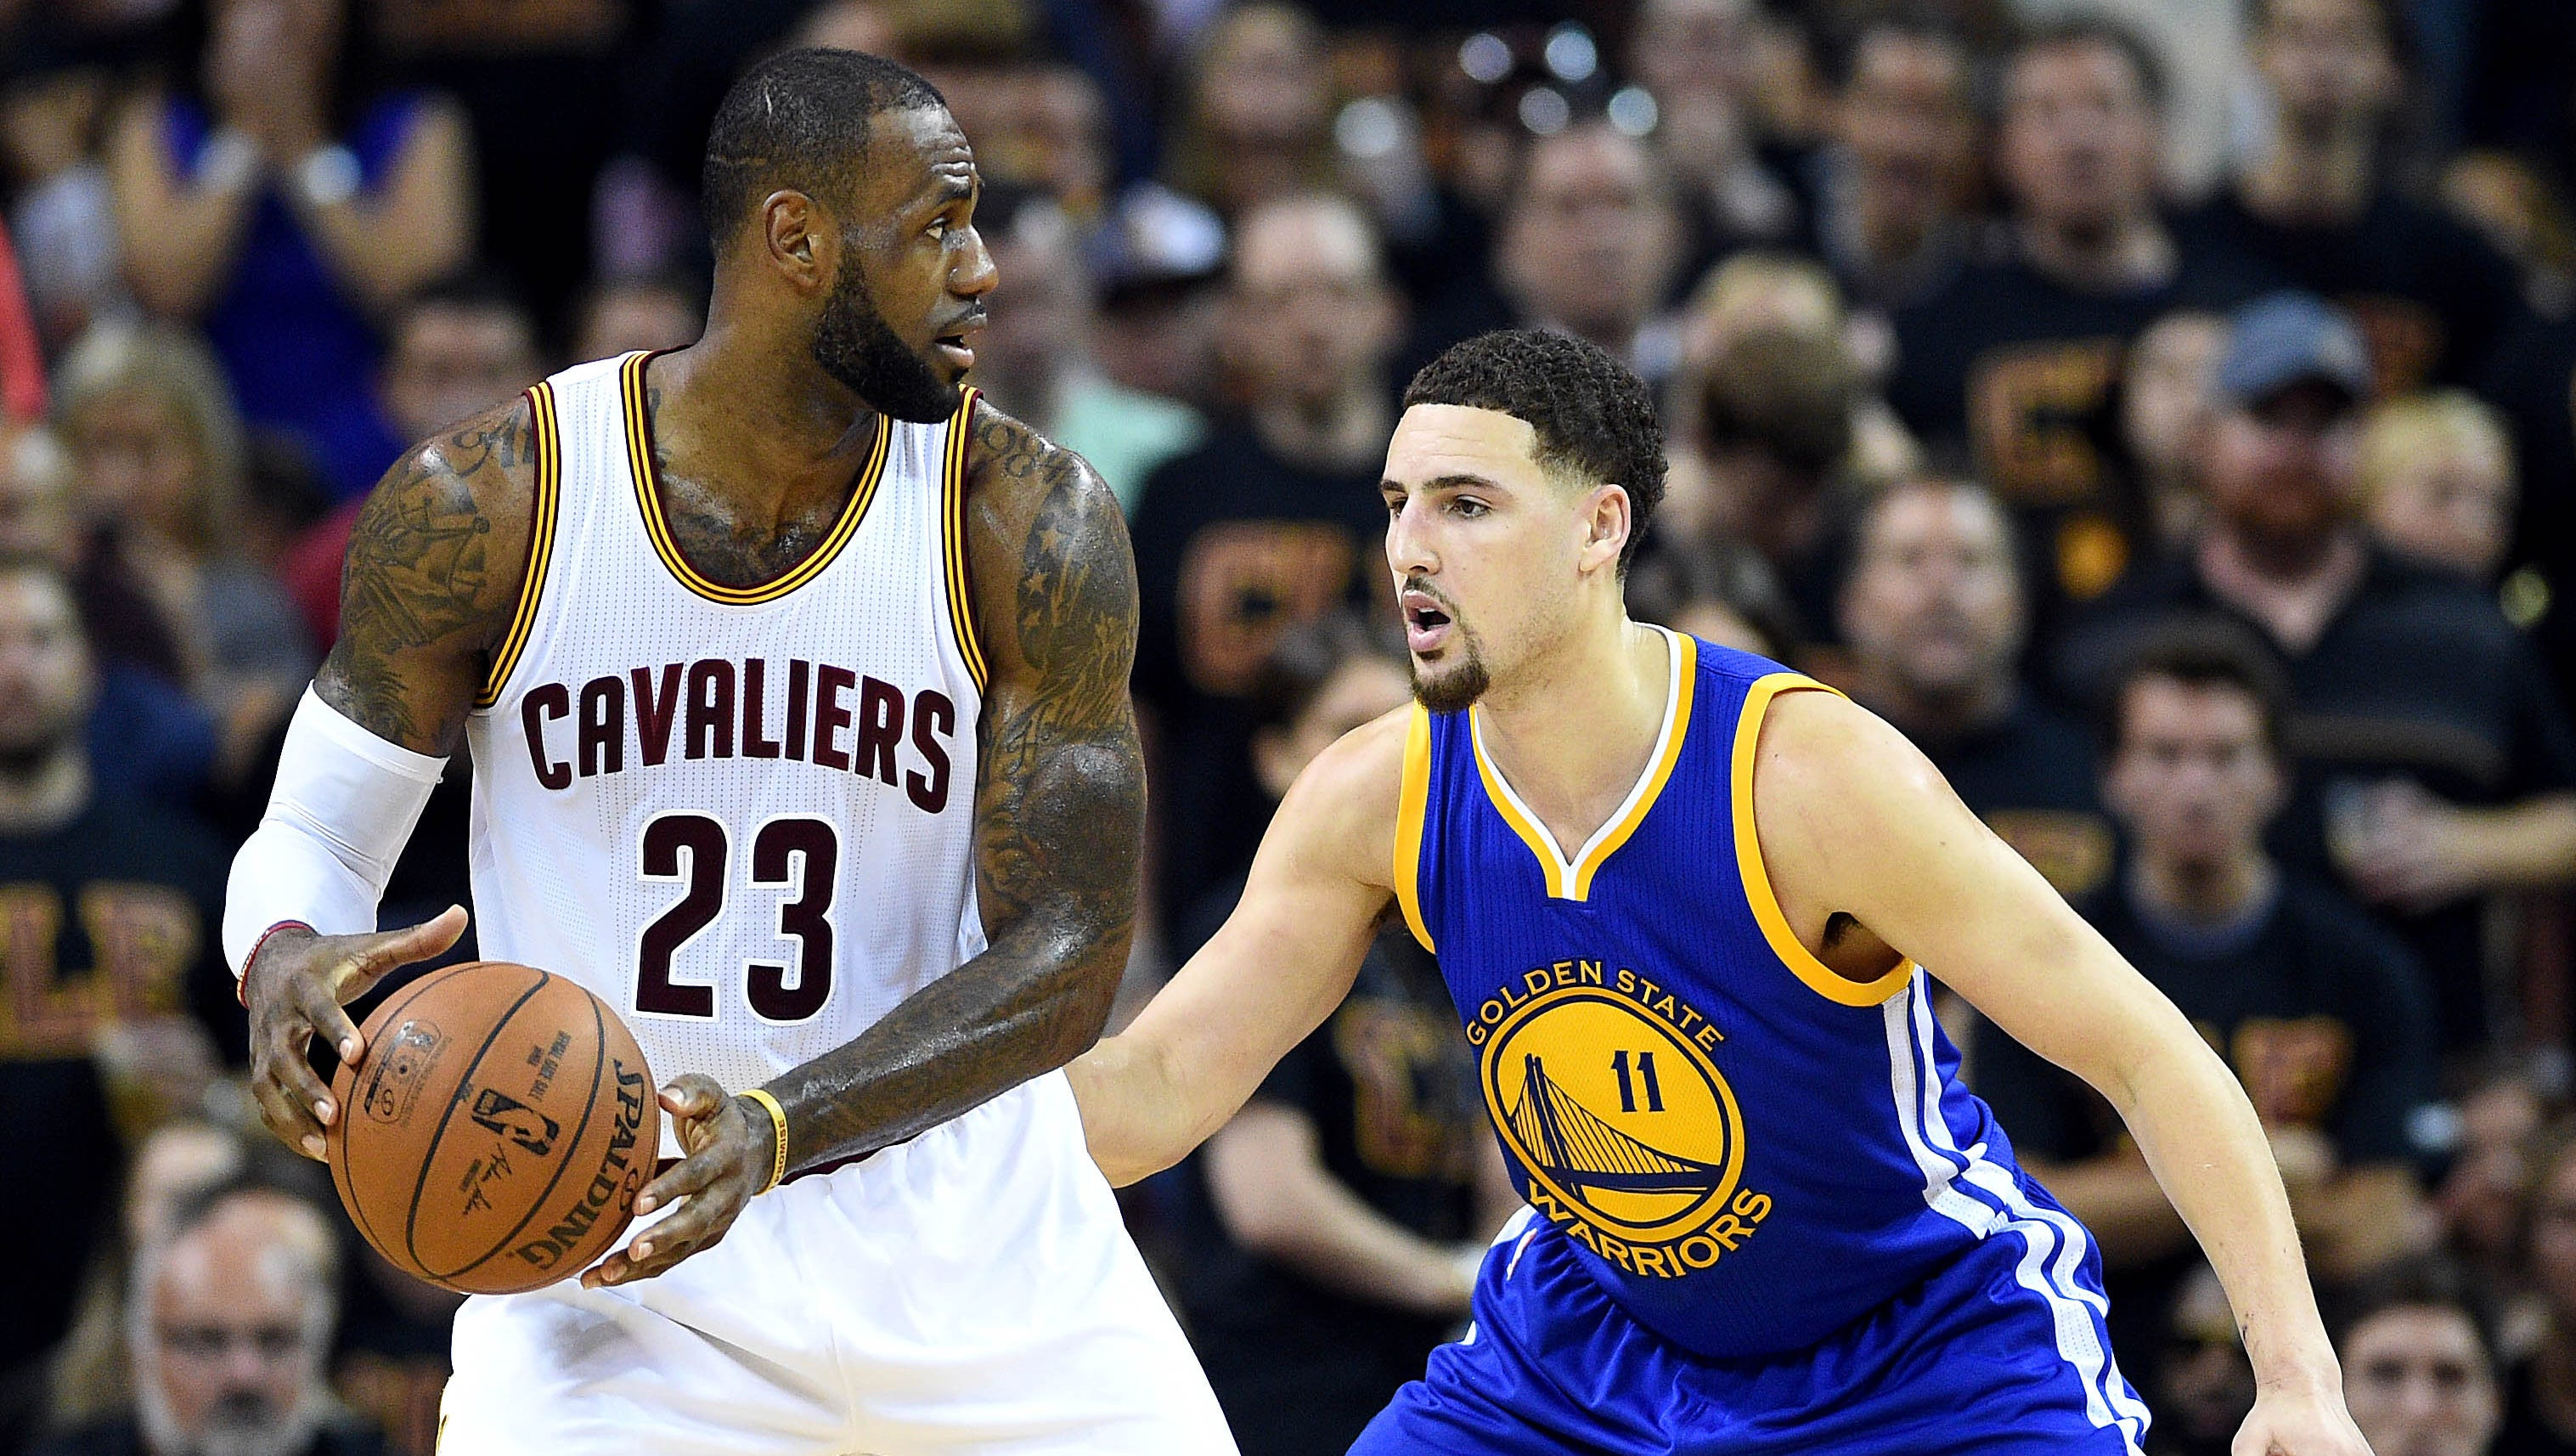 Cavaliers vs warriors game 7 predictions - Warriors Vs Cavaliers Game 7 Who Wins Nba Title